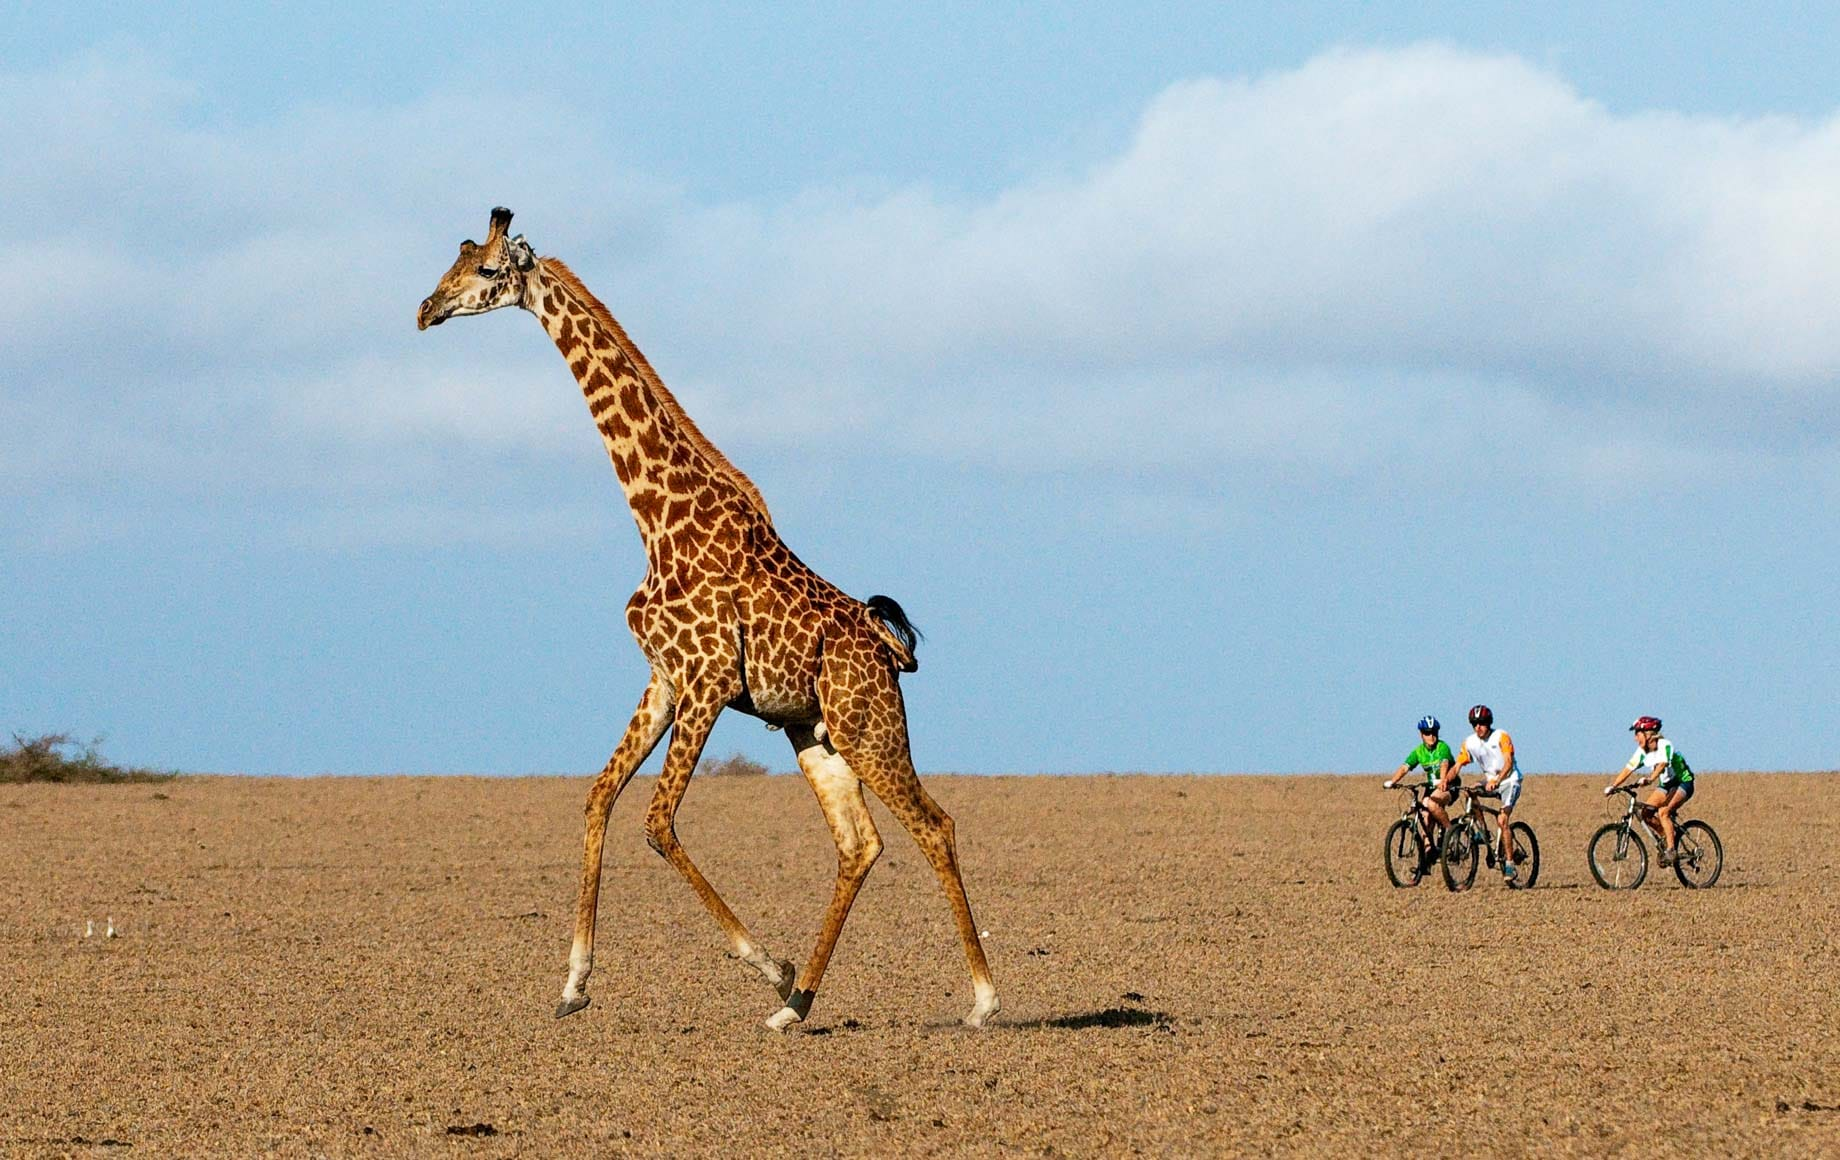 Riding bicycles alongside roaming giraffe at Chyulu Hills